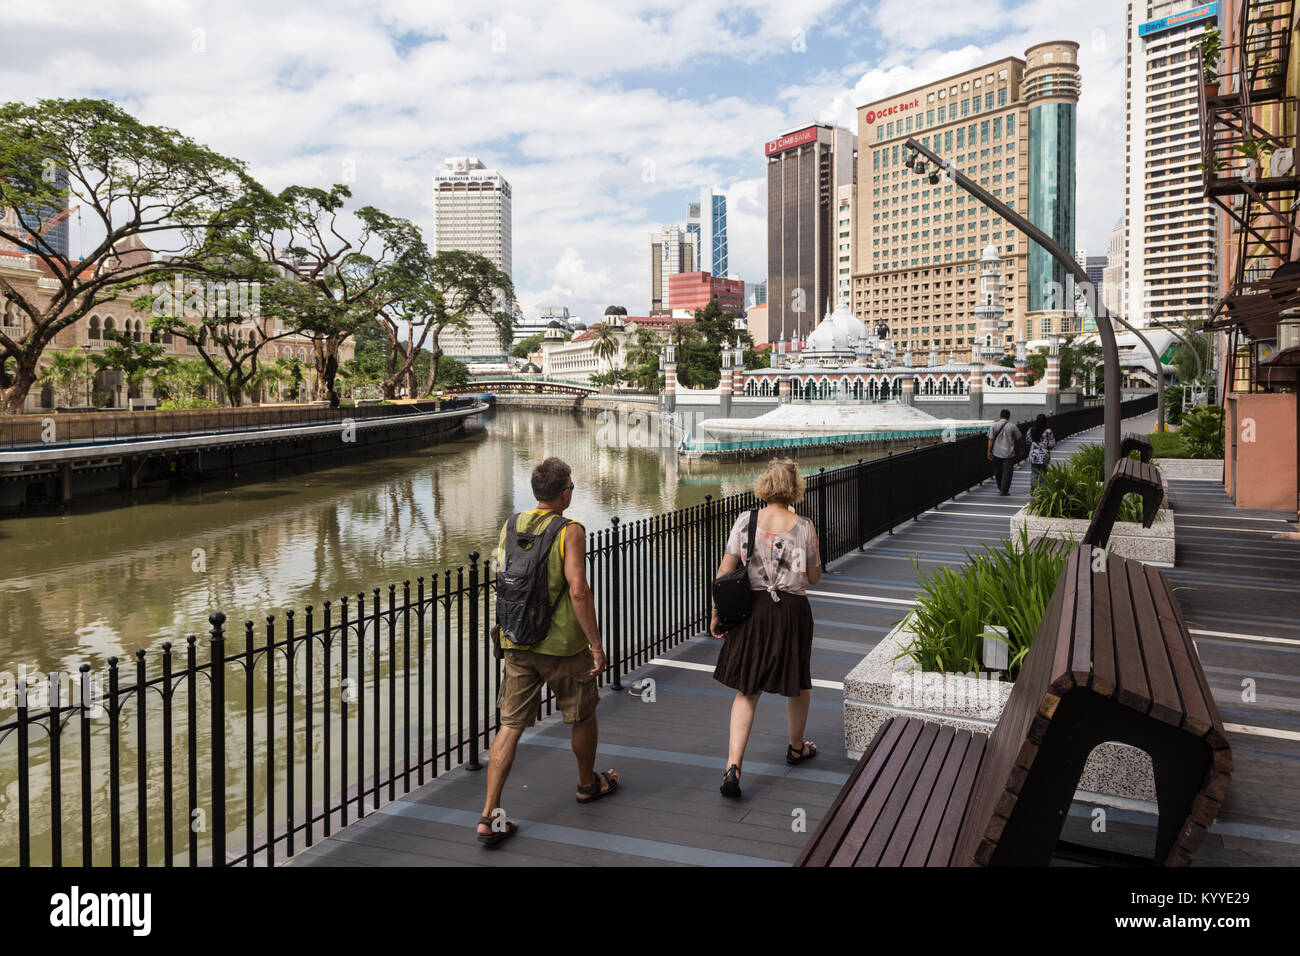 Kuala Lumpur, Malaysia - December 22, 2017: Tourists walk on the new promenade along the Klang river in front of - Stock Image